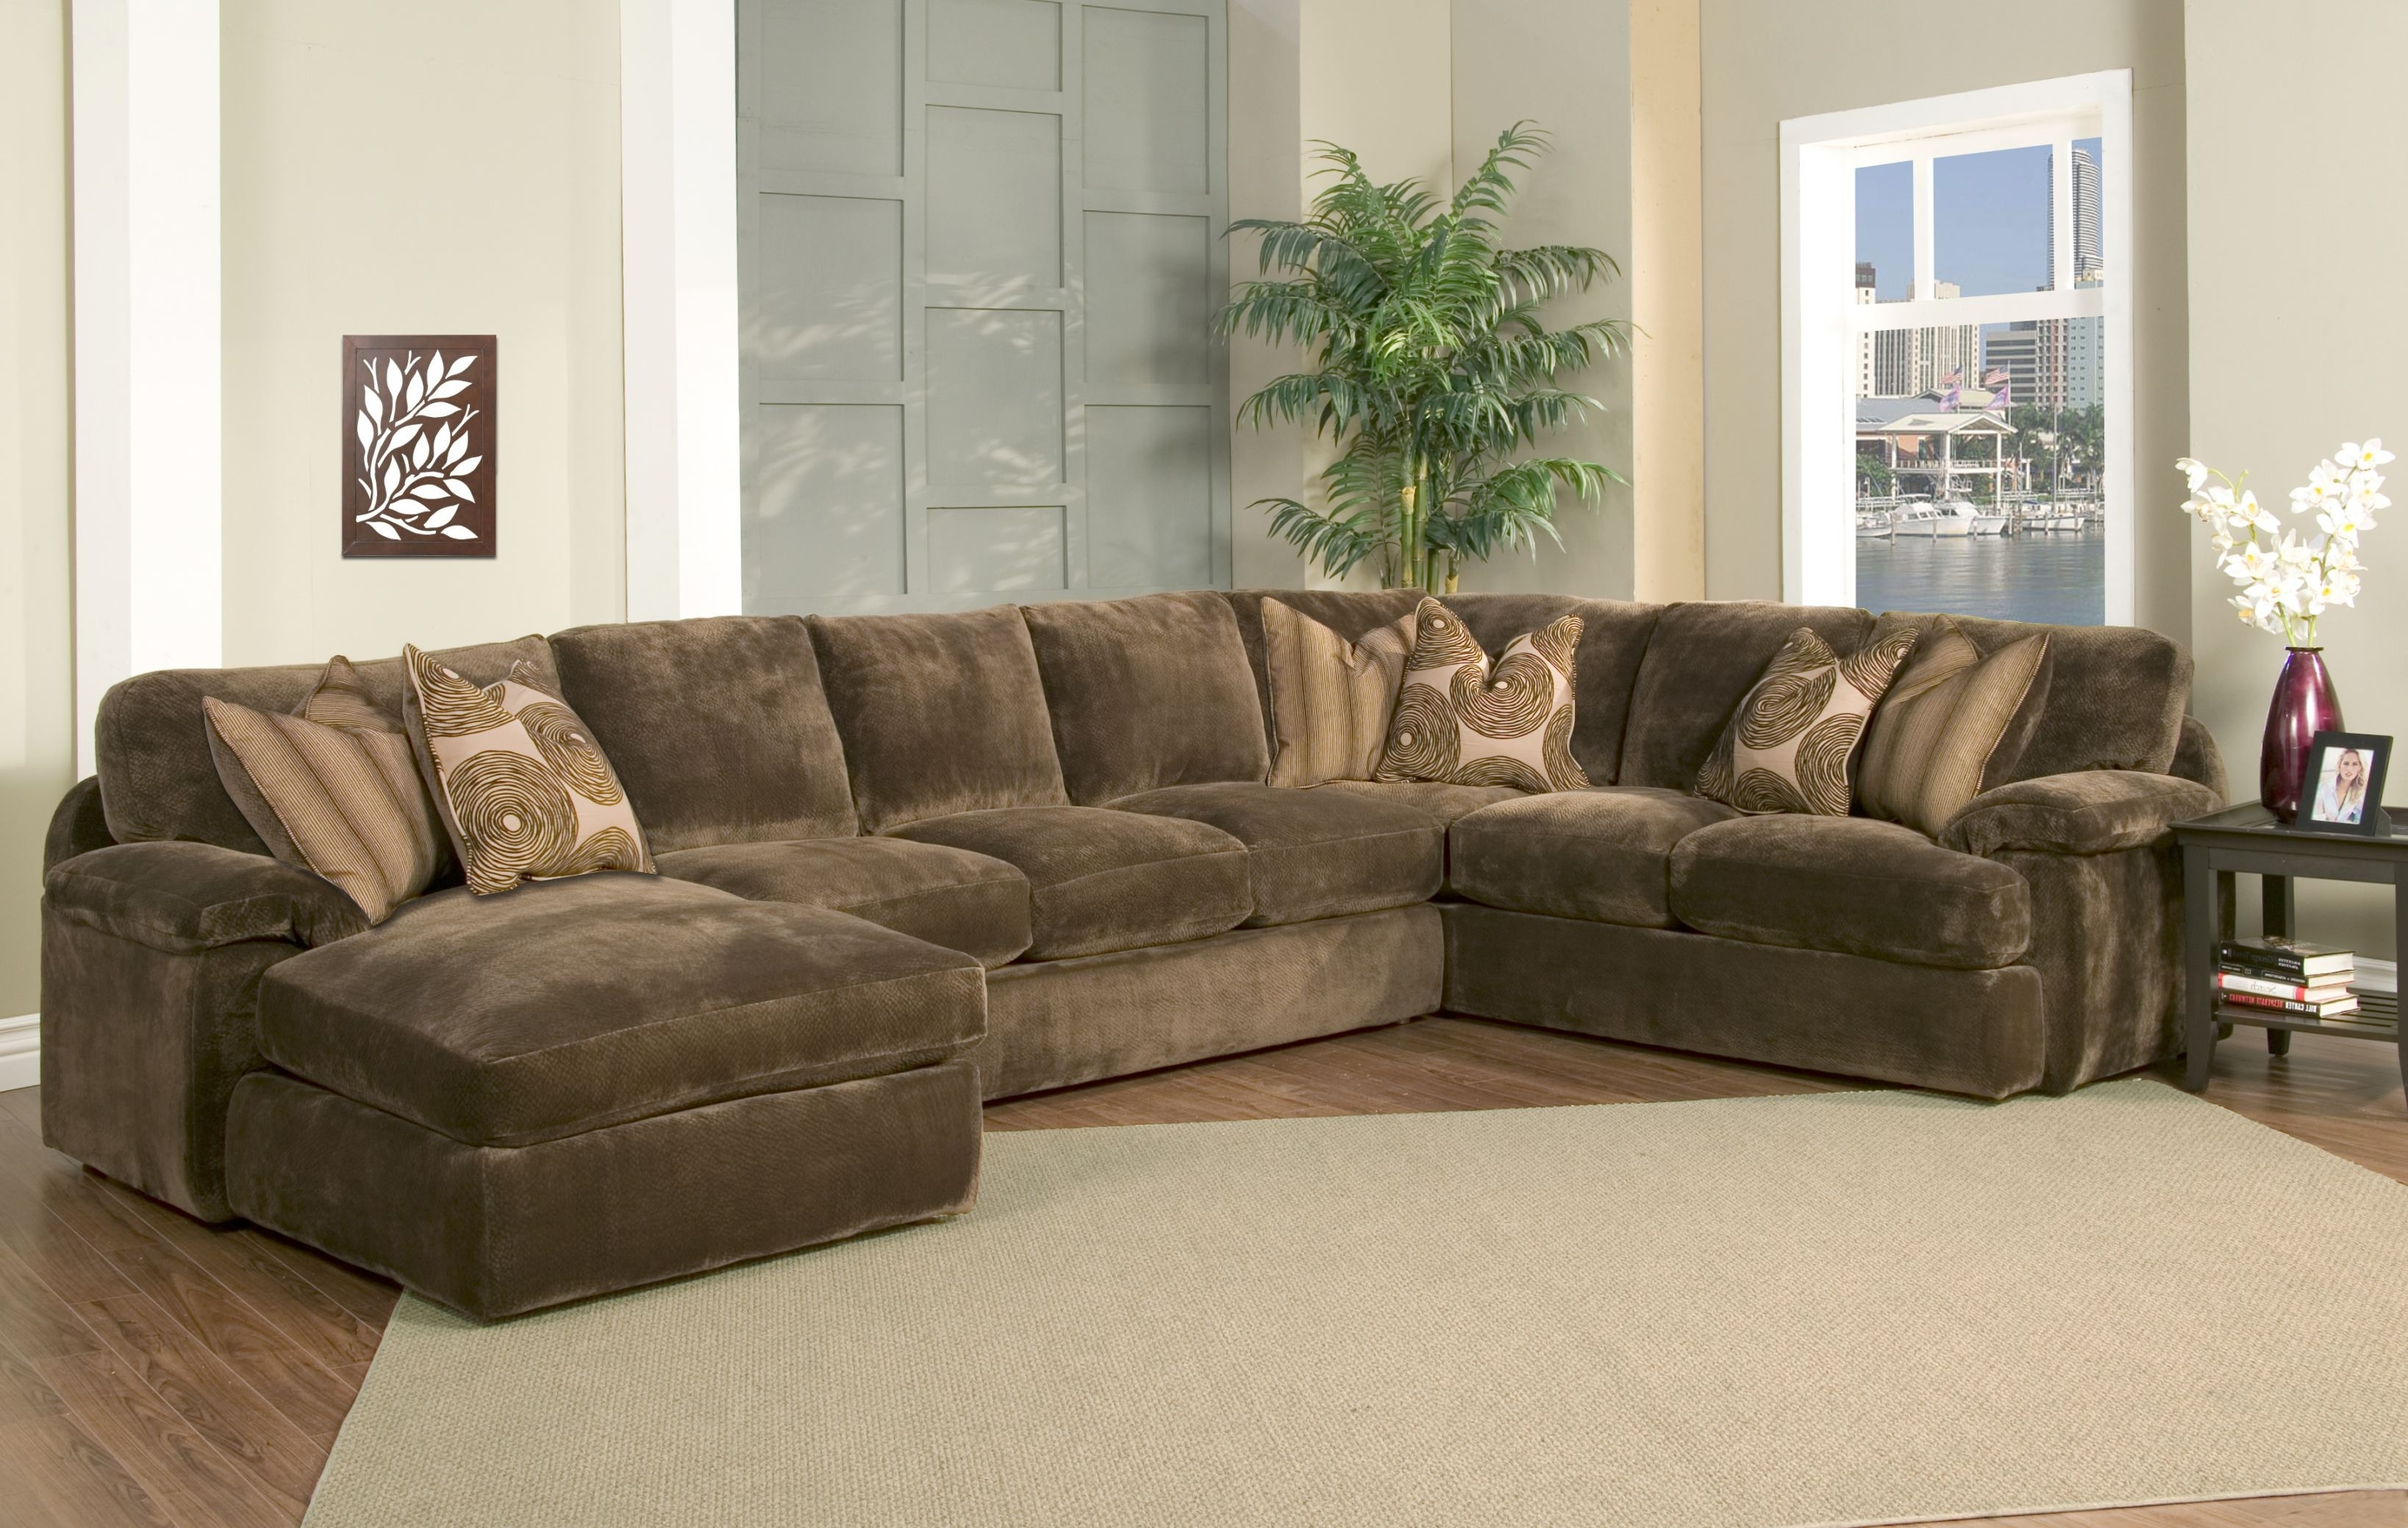 Feather Filled Cushions | Robert Michaels Sofa | Robert Michaels Within Down Filled Sofas (View 7 of 10)